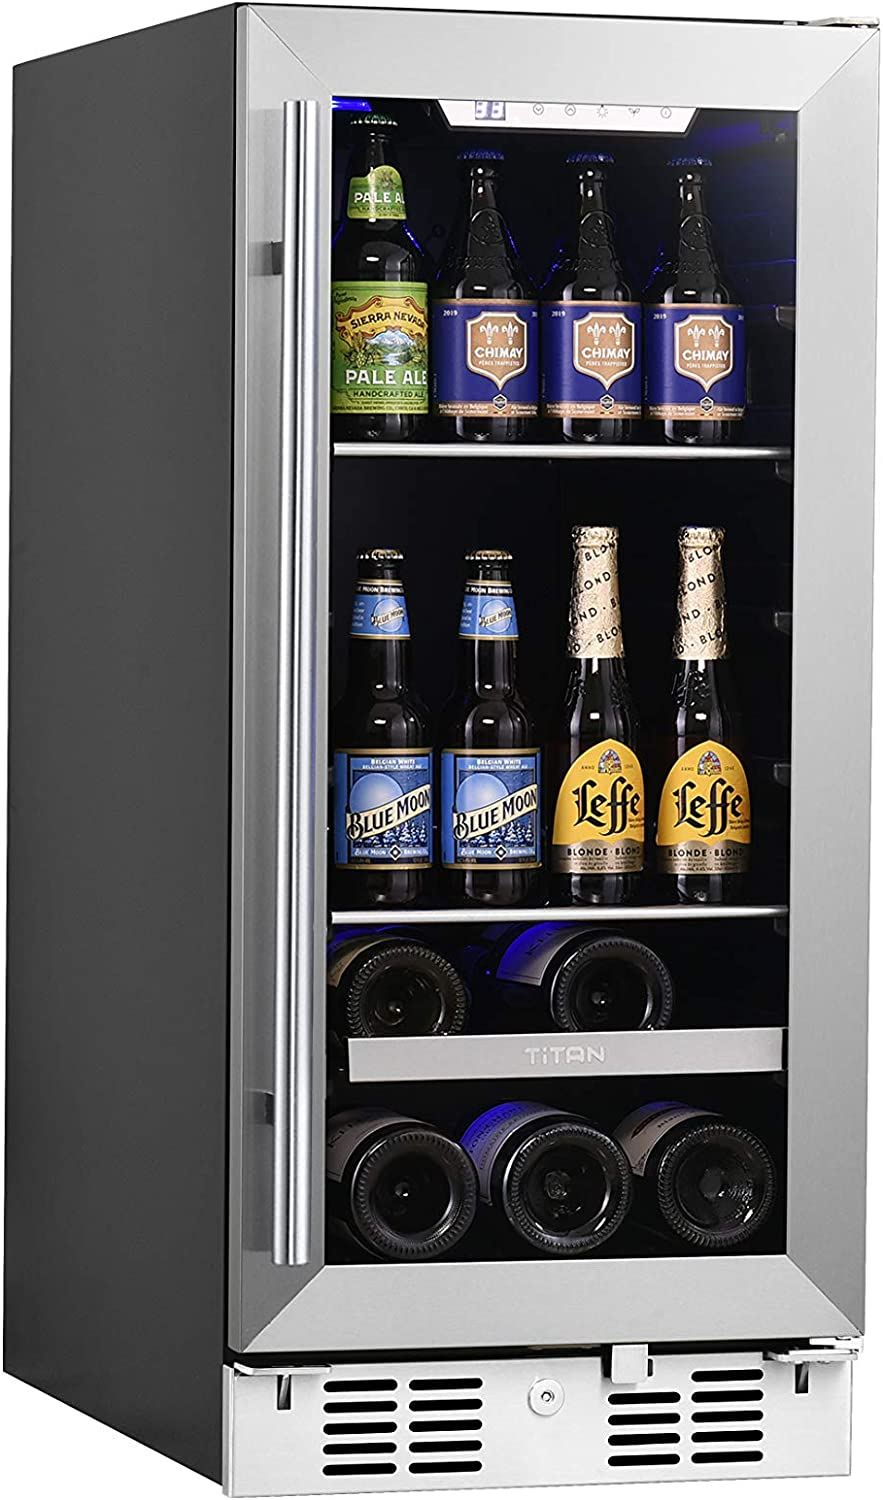 ?Limited Time Deal?Titan 15 inch Built In Beverage Cooler and Wine Cooler, 48 Can and 7 Bottle Stainless Steel Single Door Single Zone